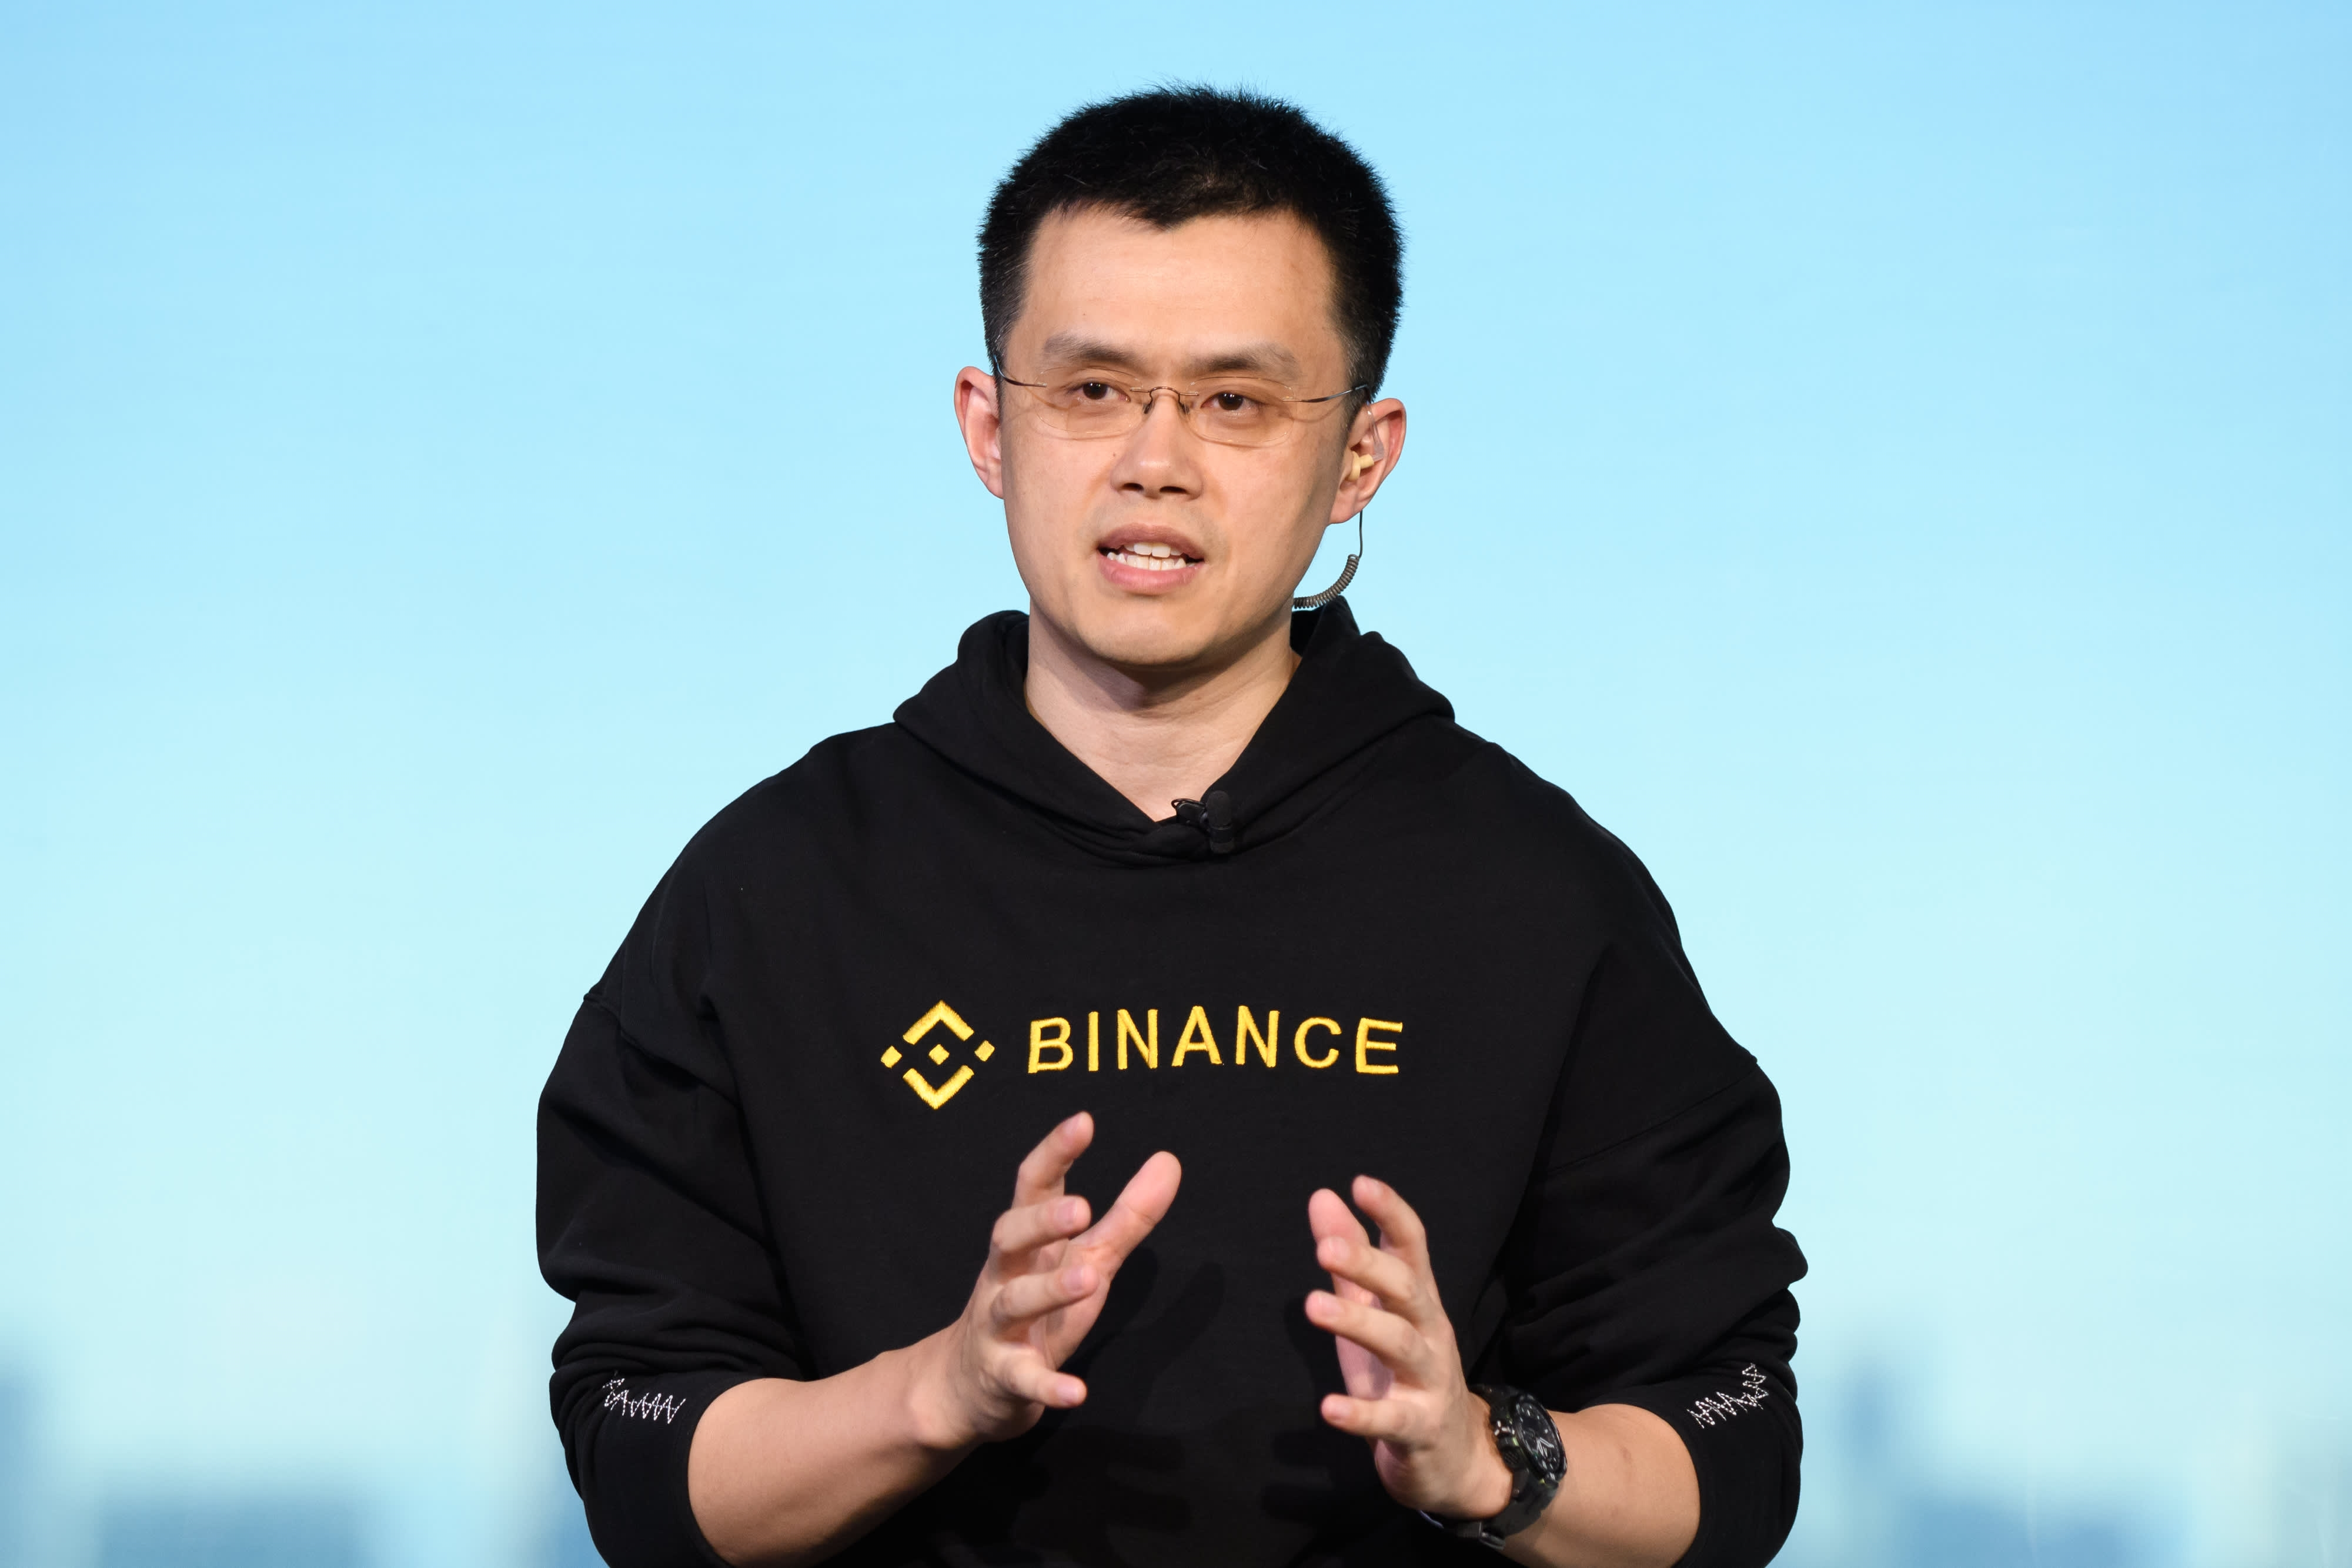 Binance, the world's largest cryptocurrency exchange, is launching an NFT marketplace